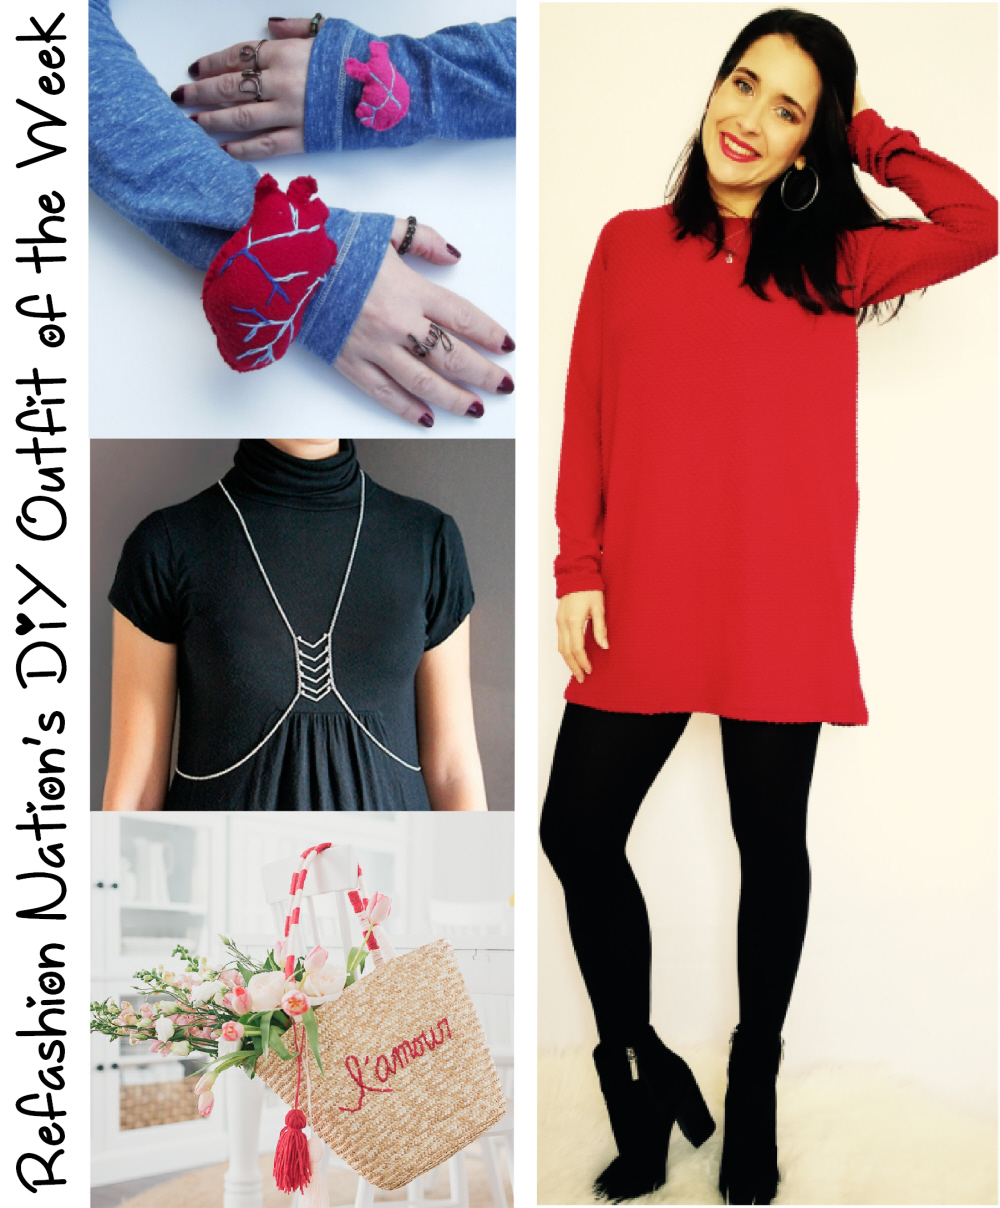 02.12.2018 outfit of the week refashion nation